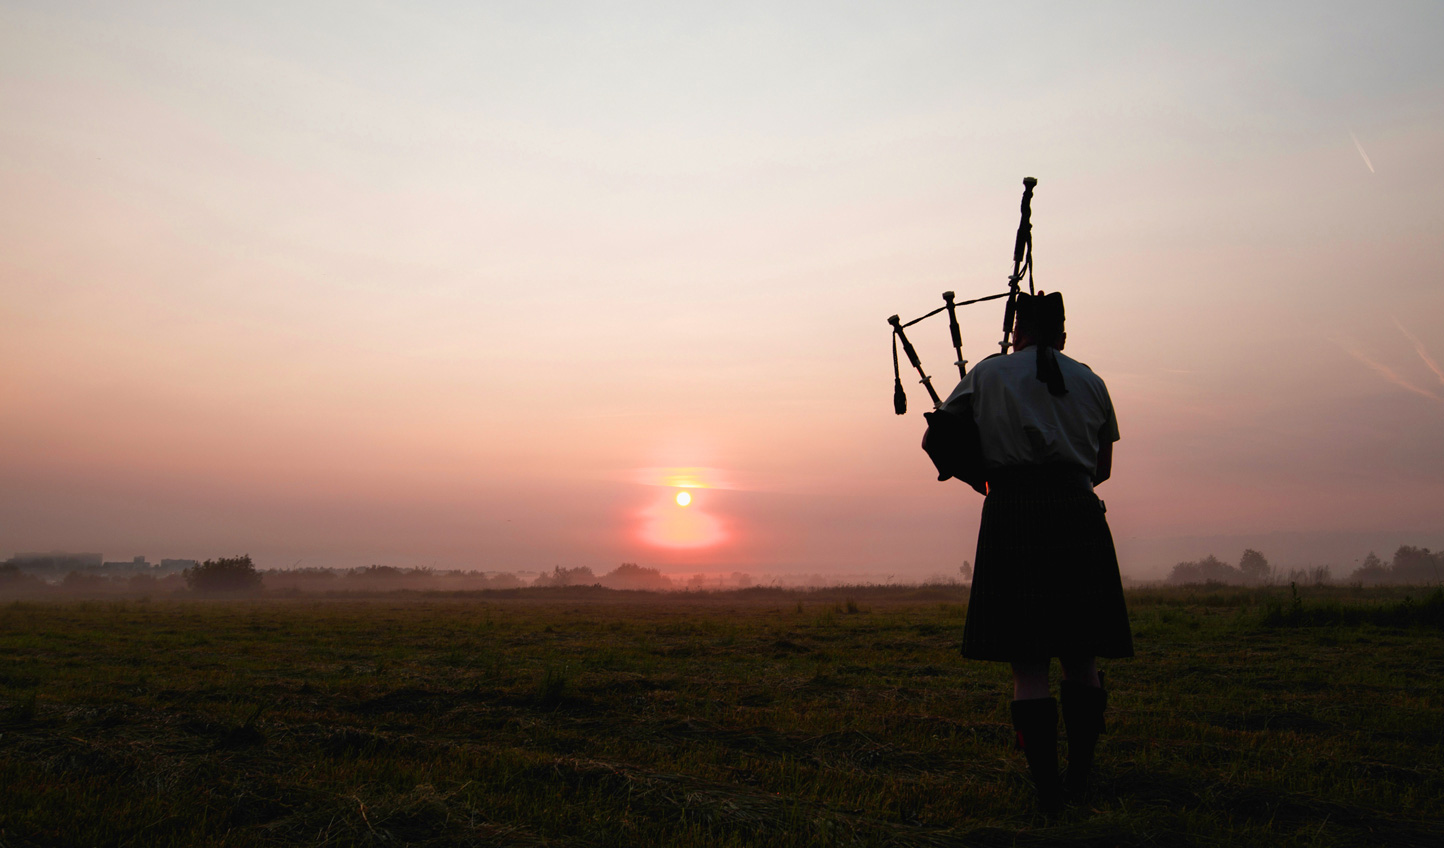 Get carried away on a lone piper's haunting lament